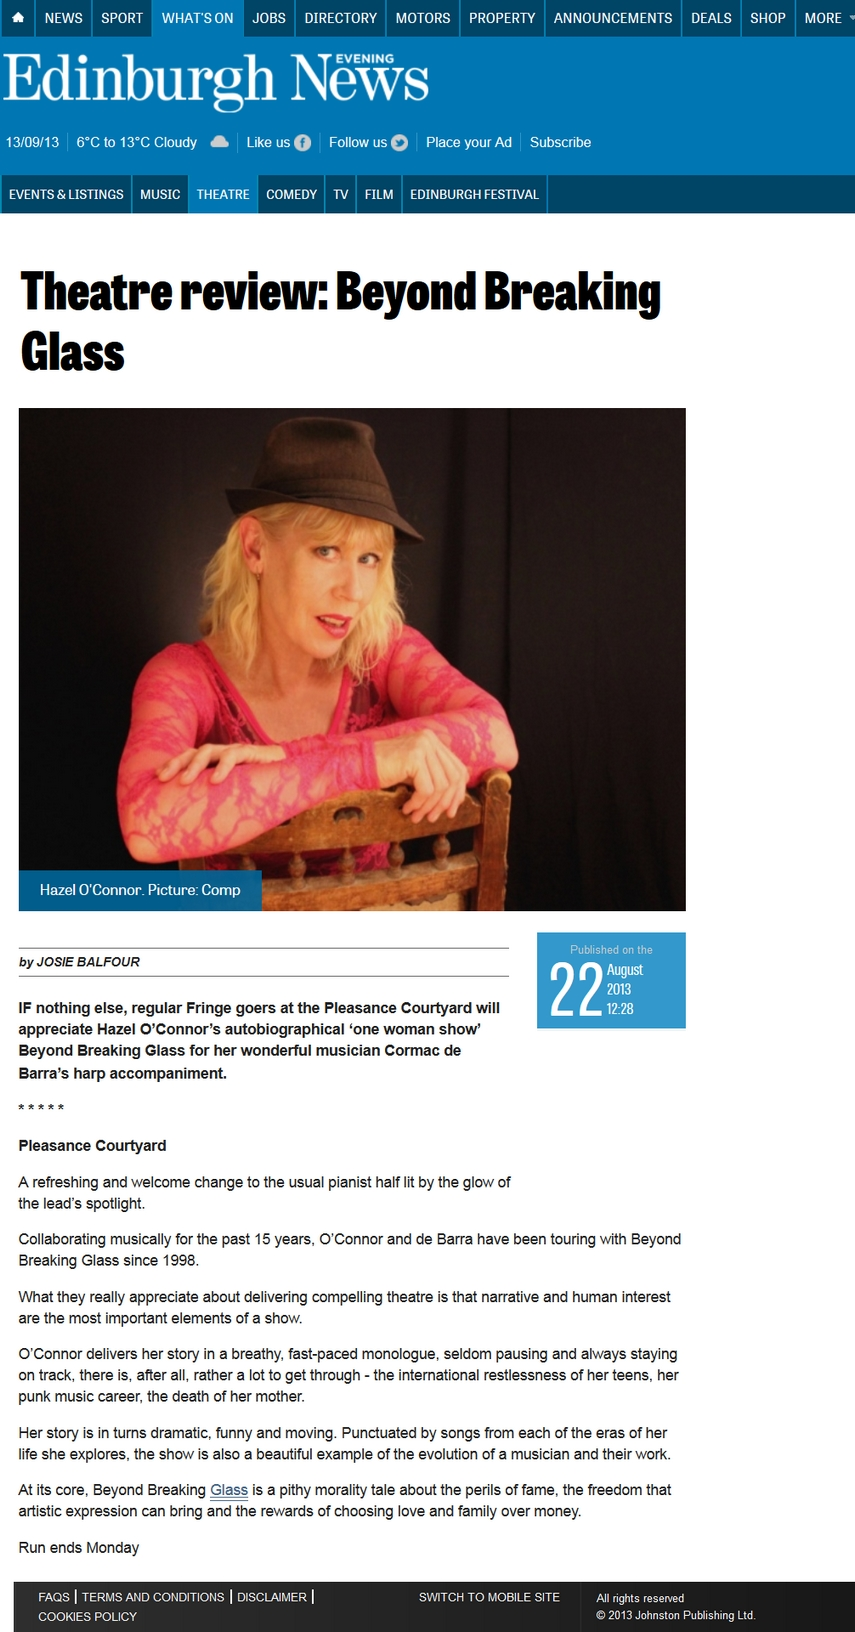 HAZEL O'CONNOR - CORMAC DE BARRA - BEYOND BREAKING GLASS - EDINBURGH EVENING NEWS - 22 AUG 2013